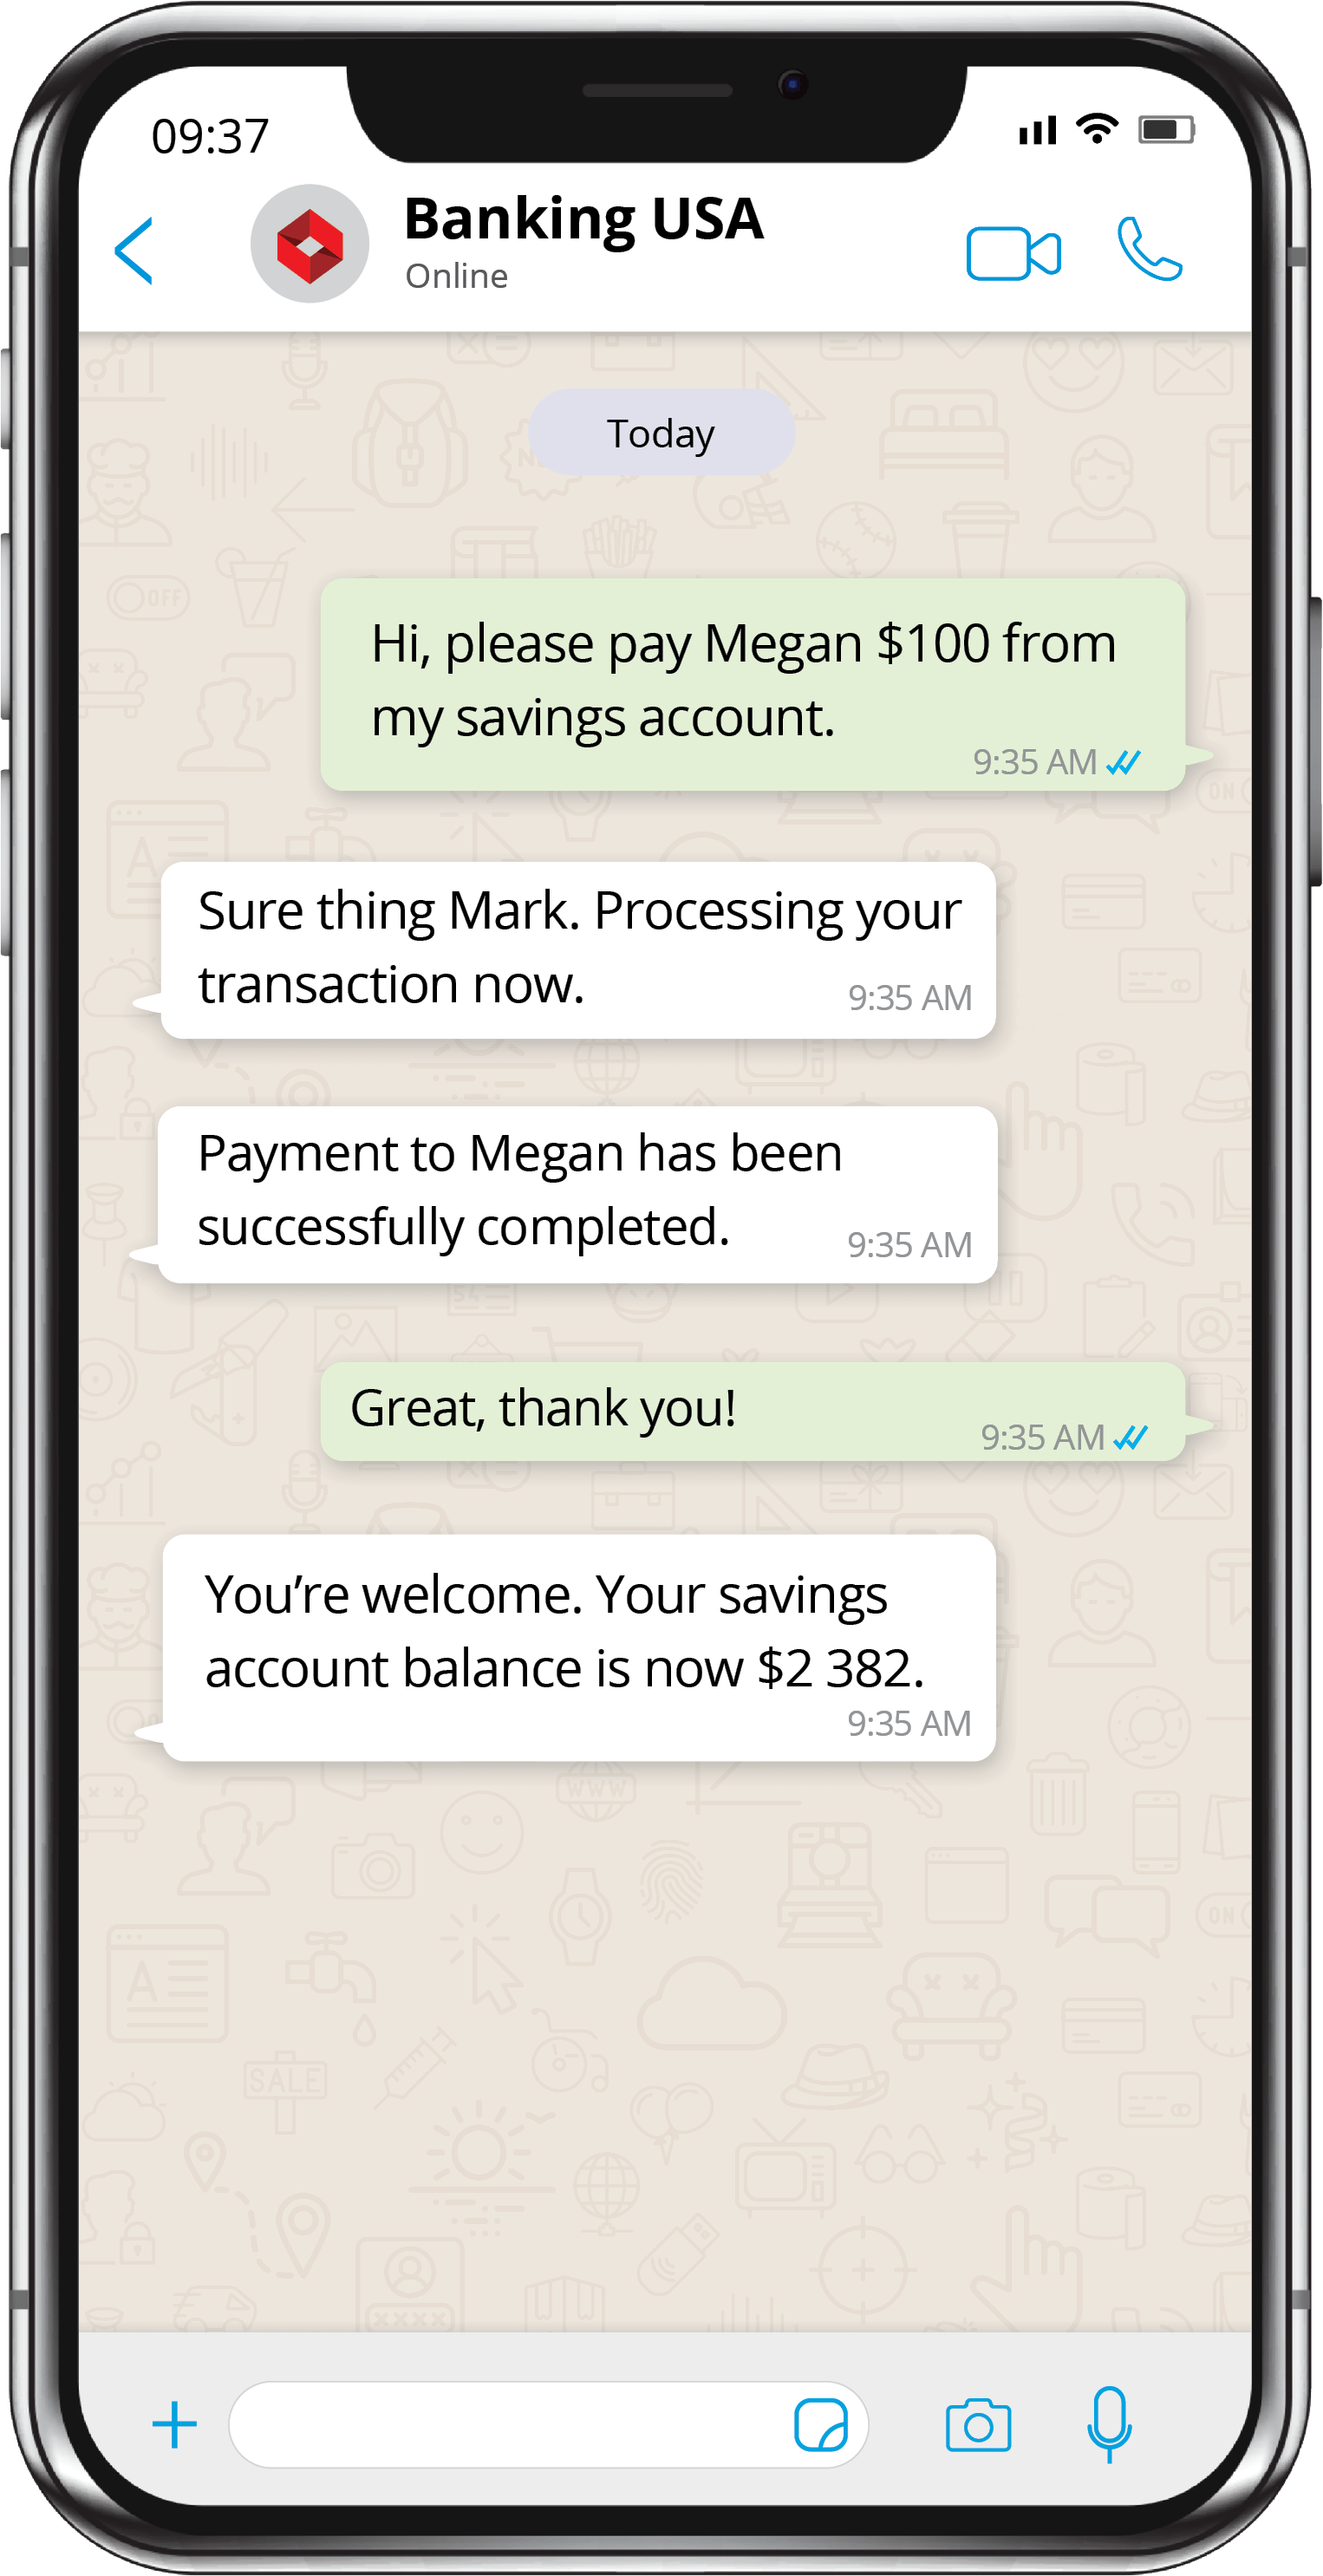 chat-commerce_screen-1_banking